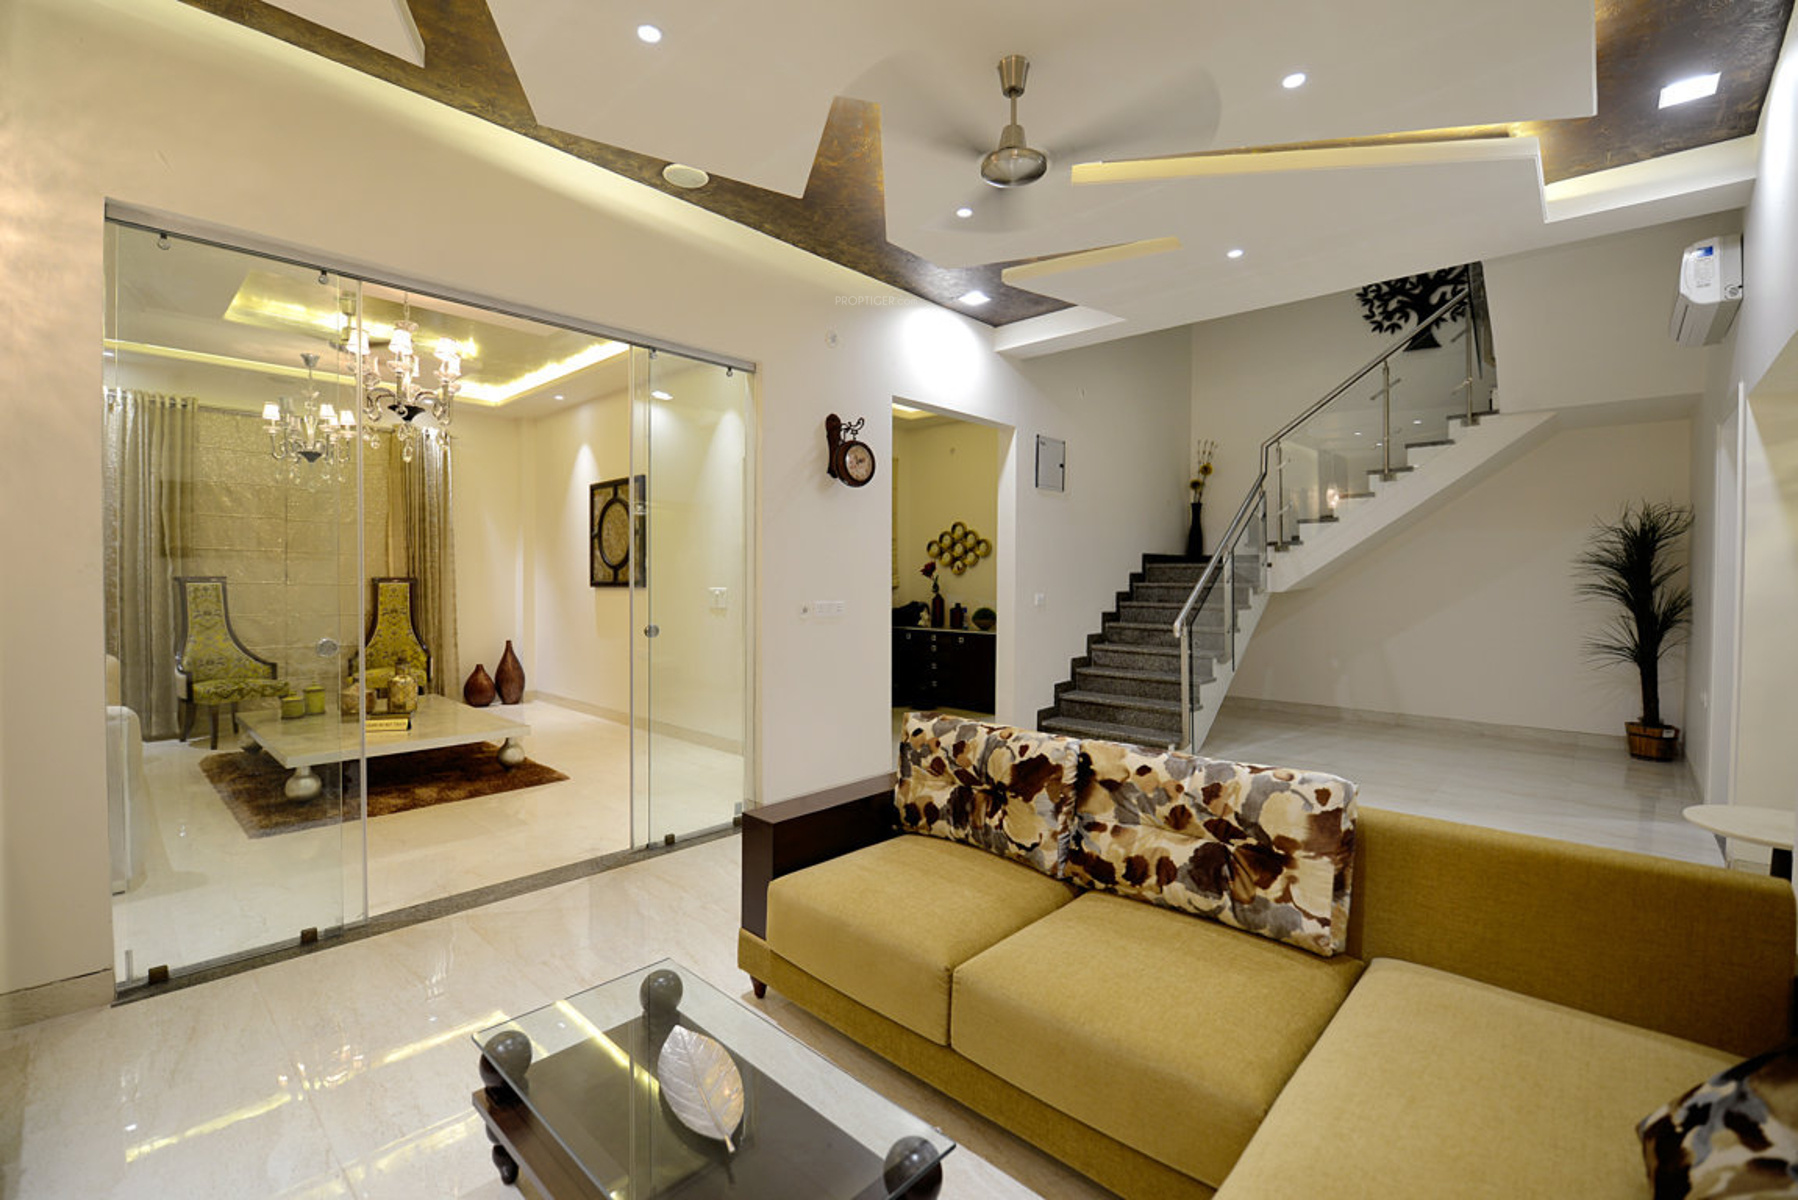 Manglam aangan prime villa in ajmer road jaipur price - Home interior design images india ...